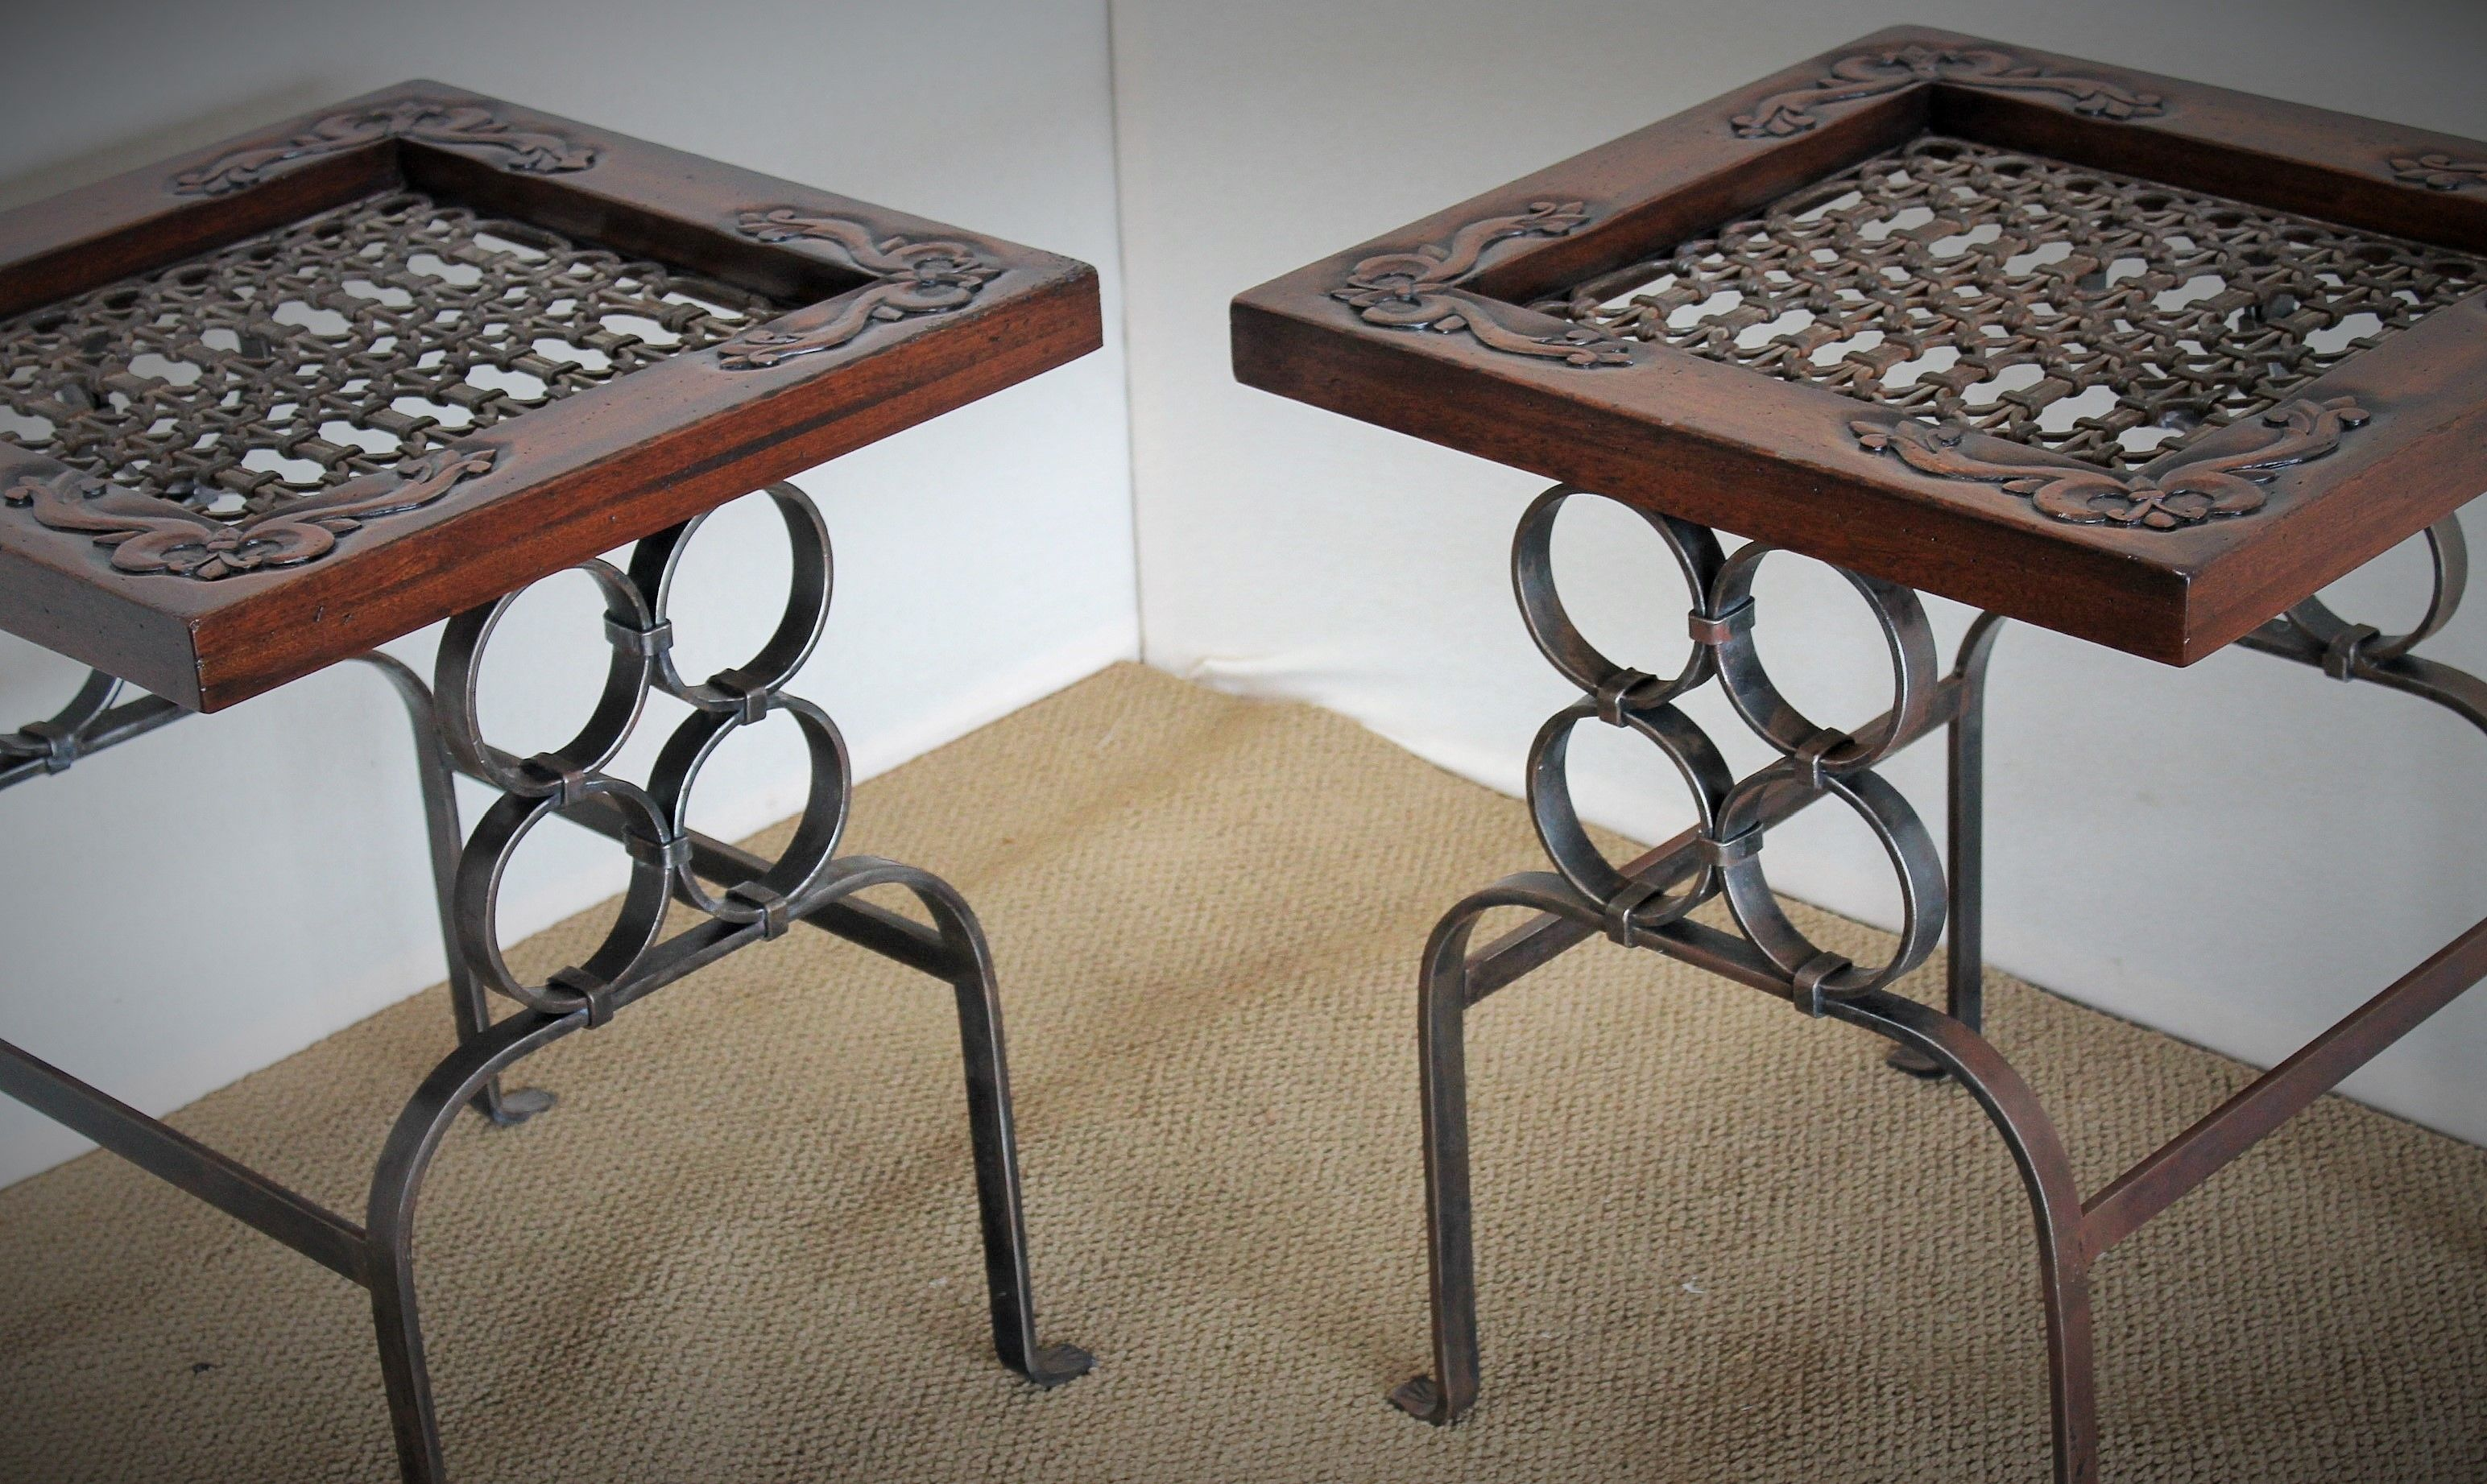 Iron Side Tables For Living Room Hand Crafted Antique Wrought Iron Wood And Iron End Table